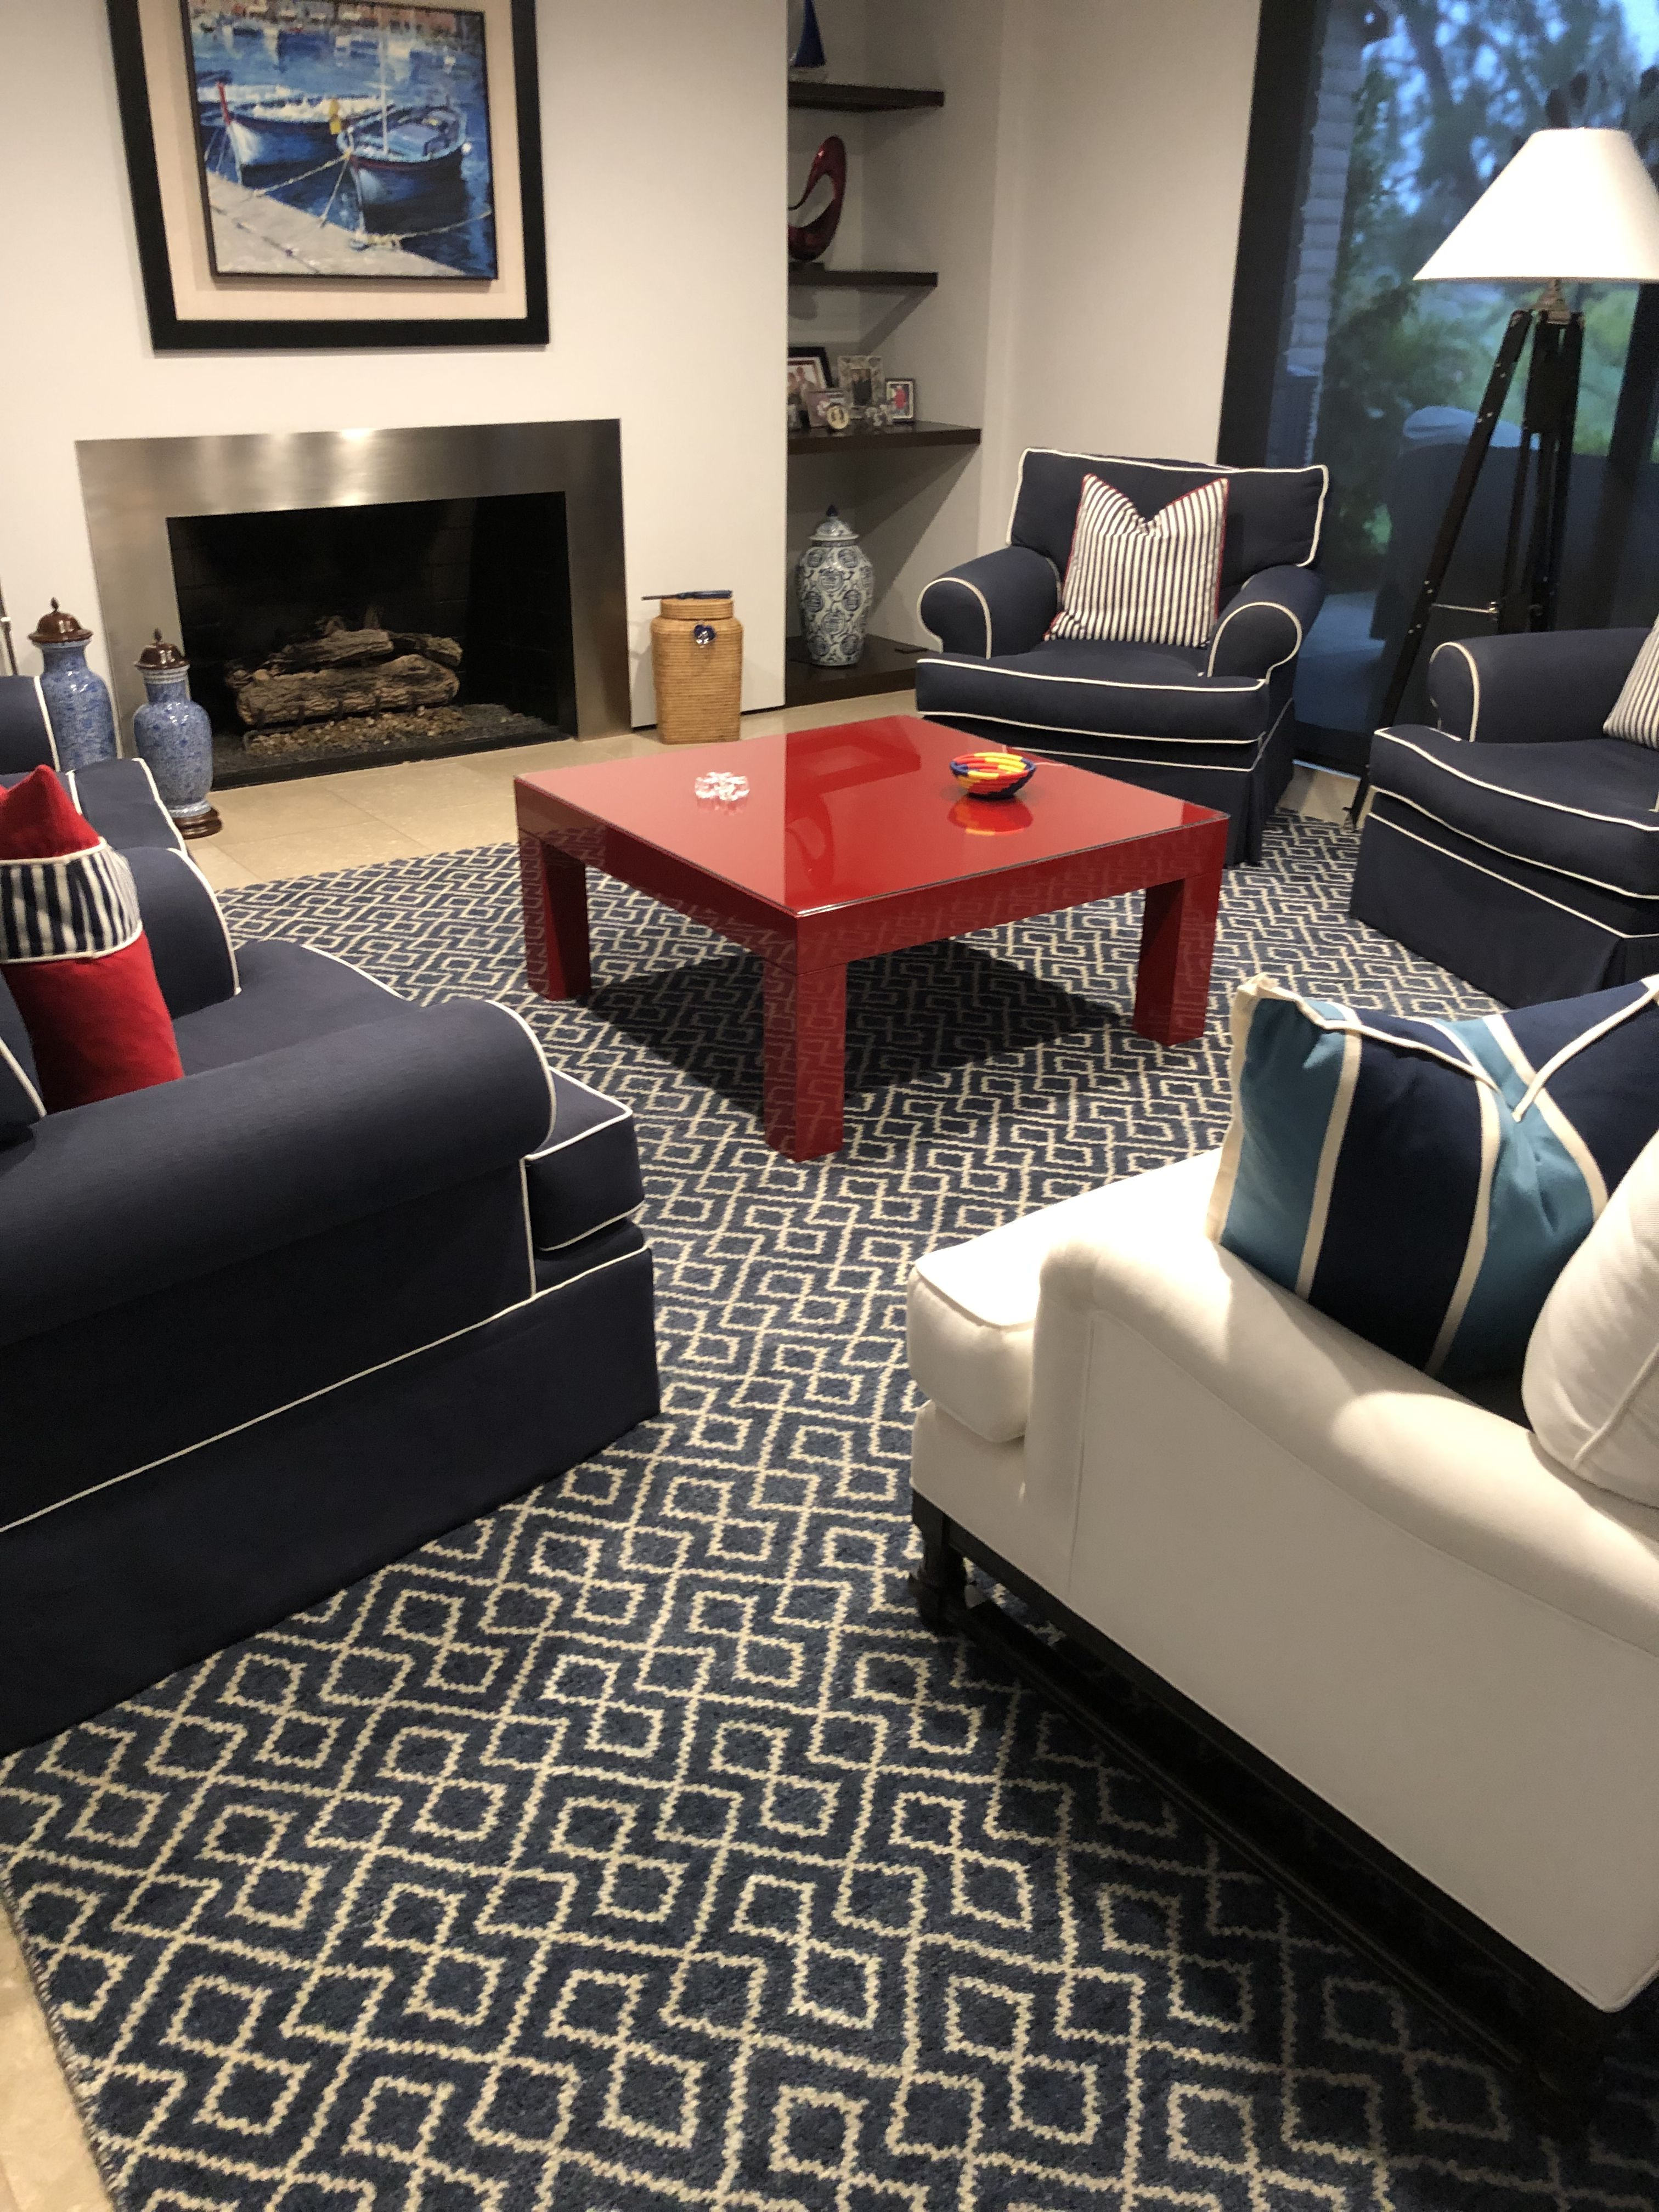 So Many Great Interior Furnishings In The Newport Beach Living Room Rug By Hemphill S Rugs Carpets Costa Mesa Fine Rugs Beach Living Room Rugs On Carpet